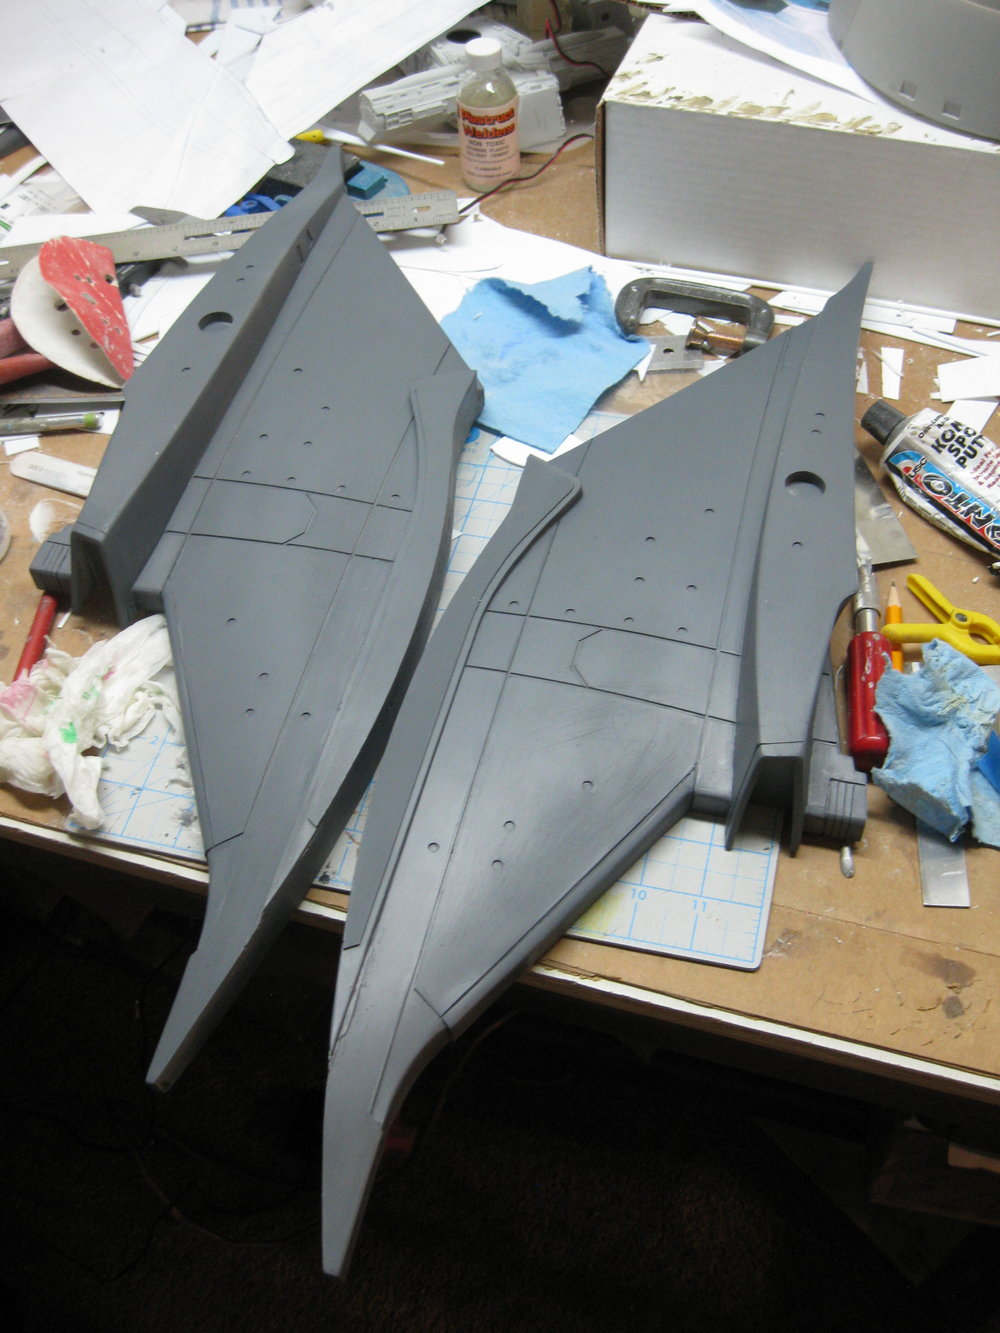 KUHN_GLOBAL_STUDIO_SCALE_TMP_USS_ENTERPRISE_REFIT_WIP1_NO_KGI_LOGO_022.jpg